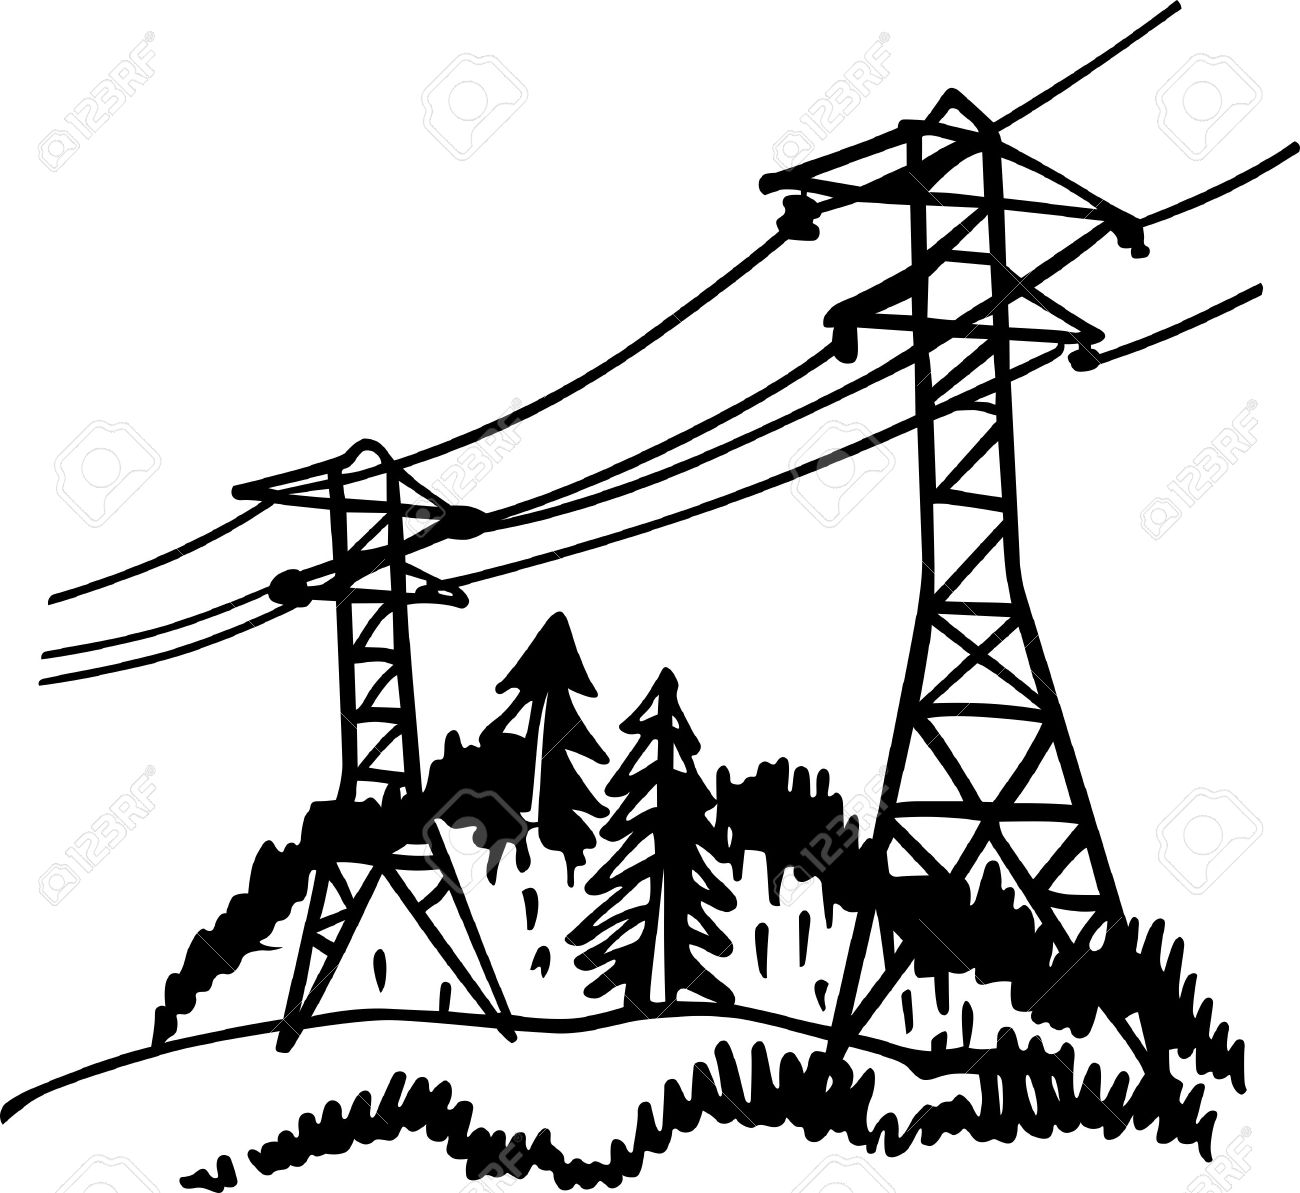 Power lines drawing at getdrawings free for personal use power